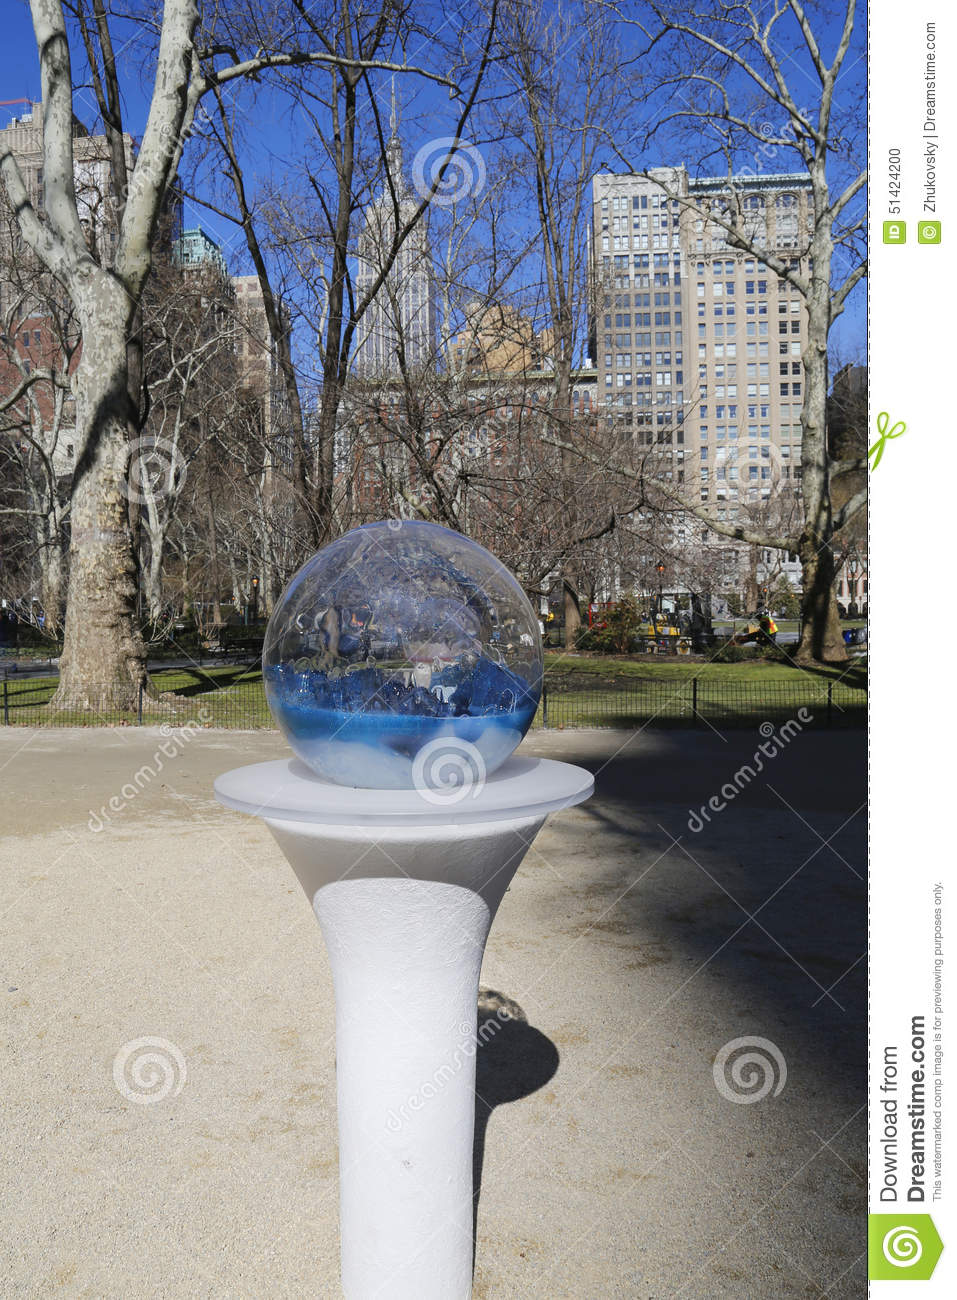 Gazing Globes installation by Paula Hayes in Madison Square Park.